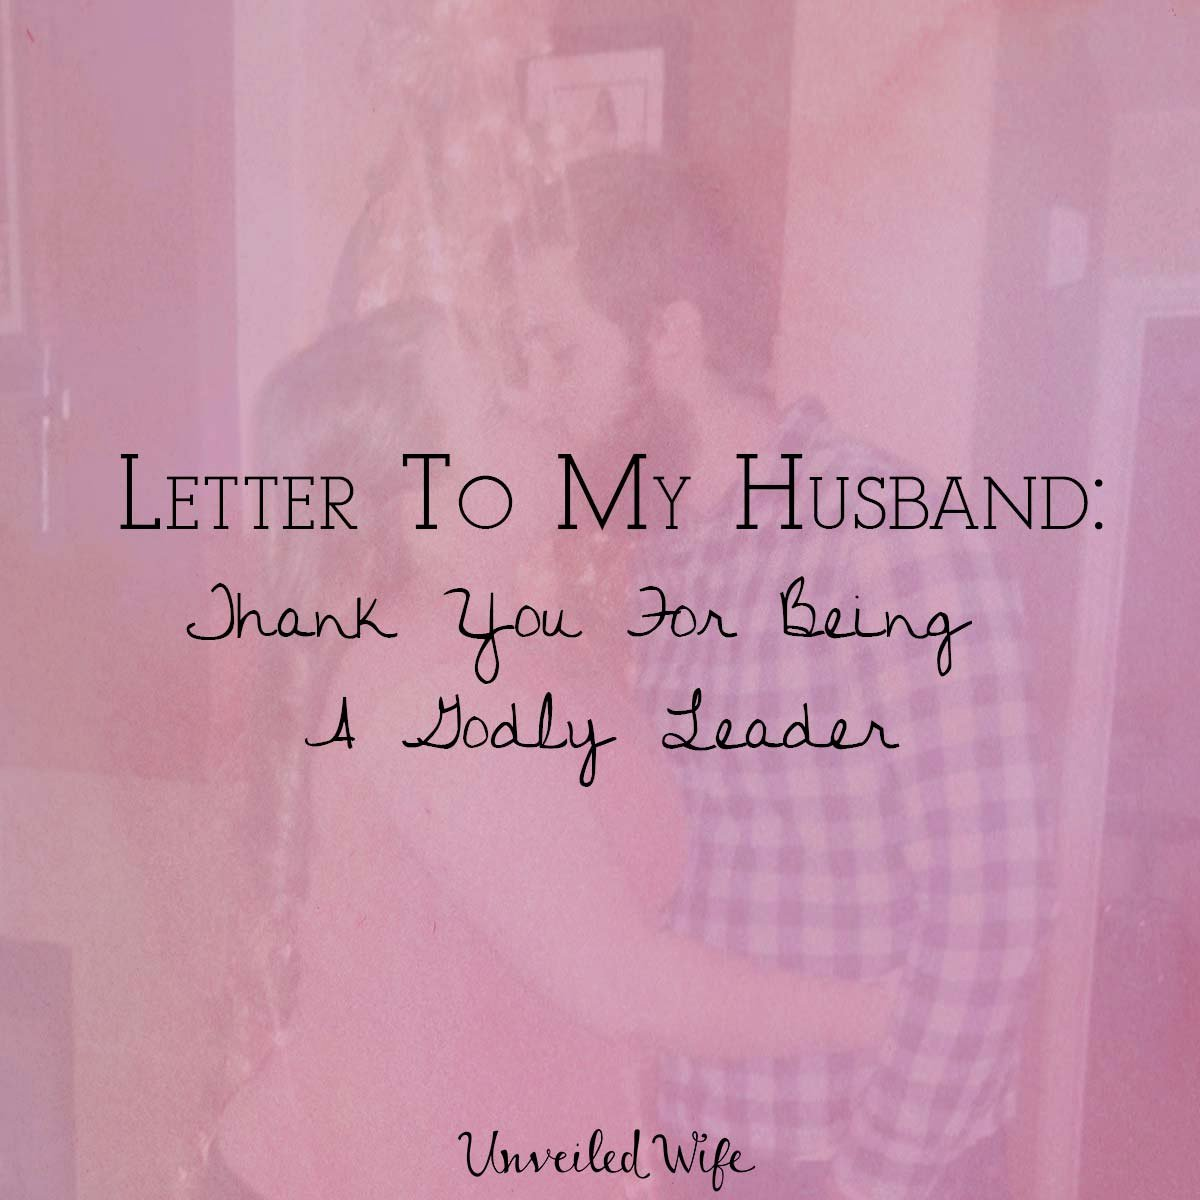 Anniversary Letter to Wife Luxury Letter to My Husband Thank You for Being A Godly Leader